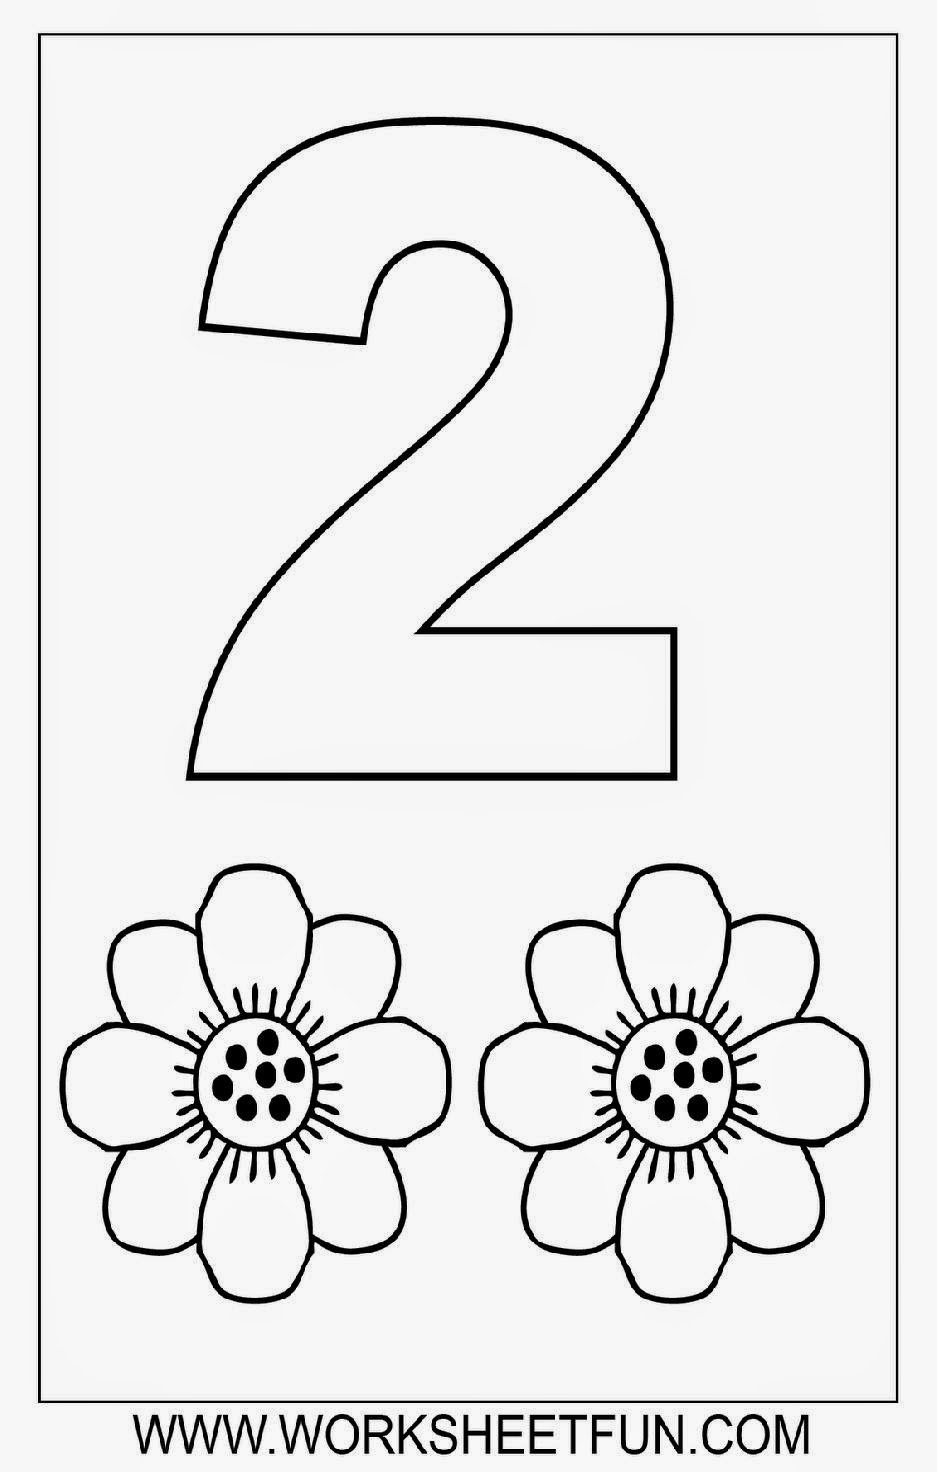 Numbers Worksheetfun Com : Number coloring sheets free sheet